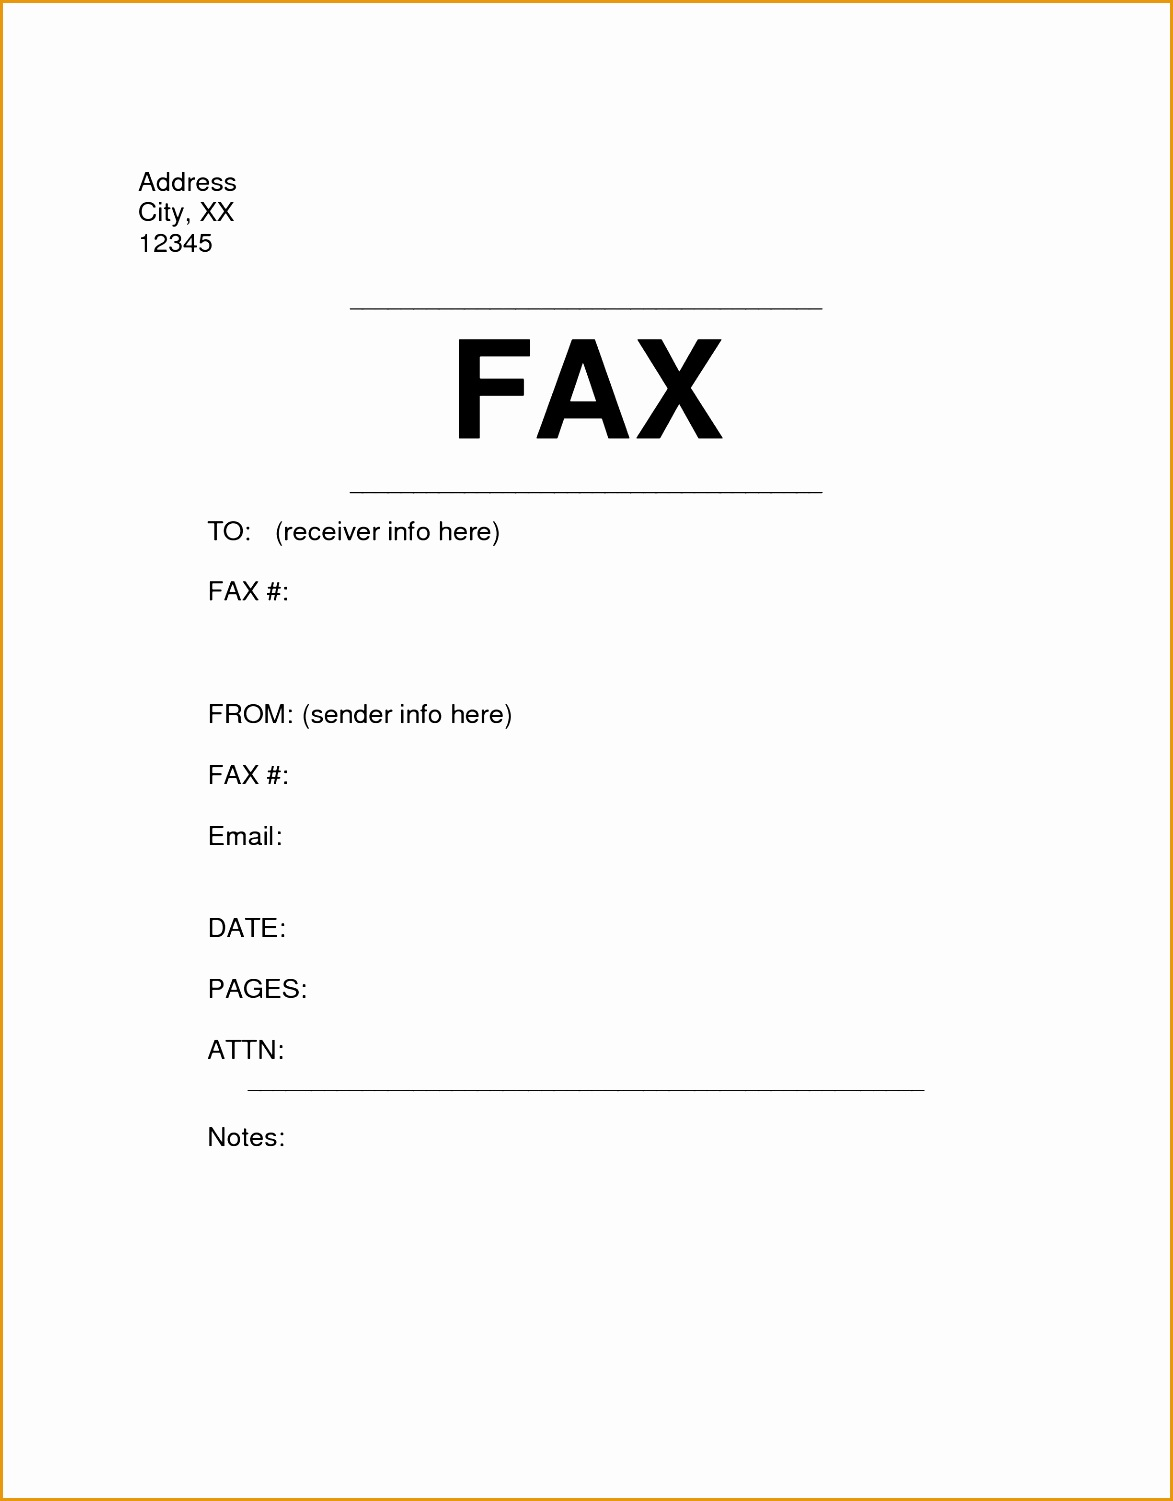 fax cover letter example resume 19615011173